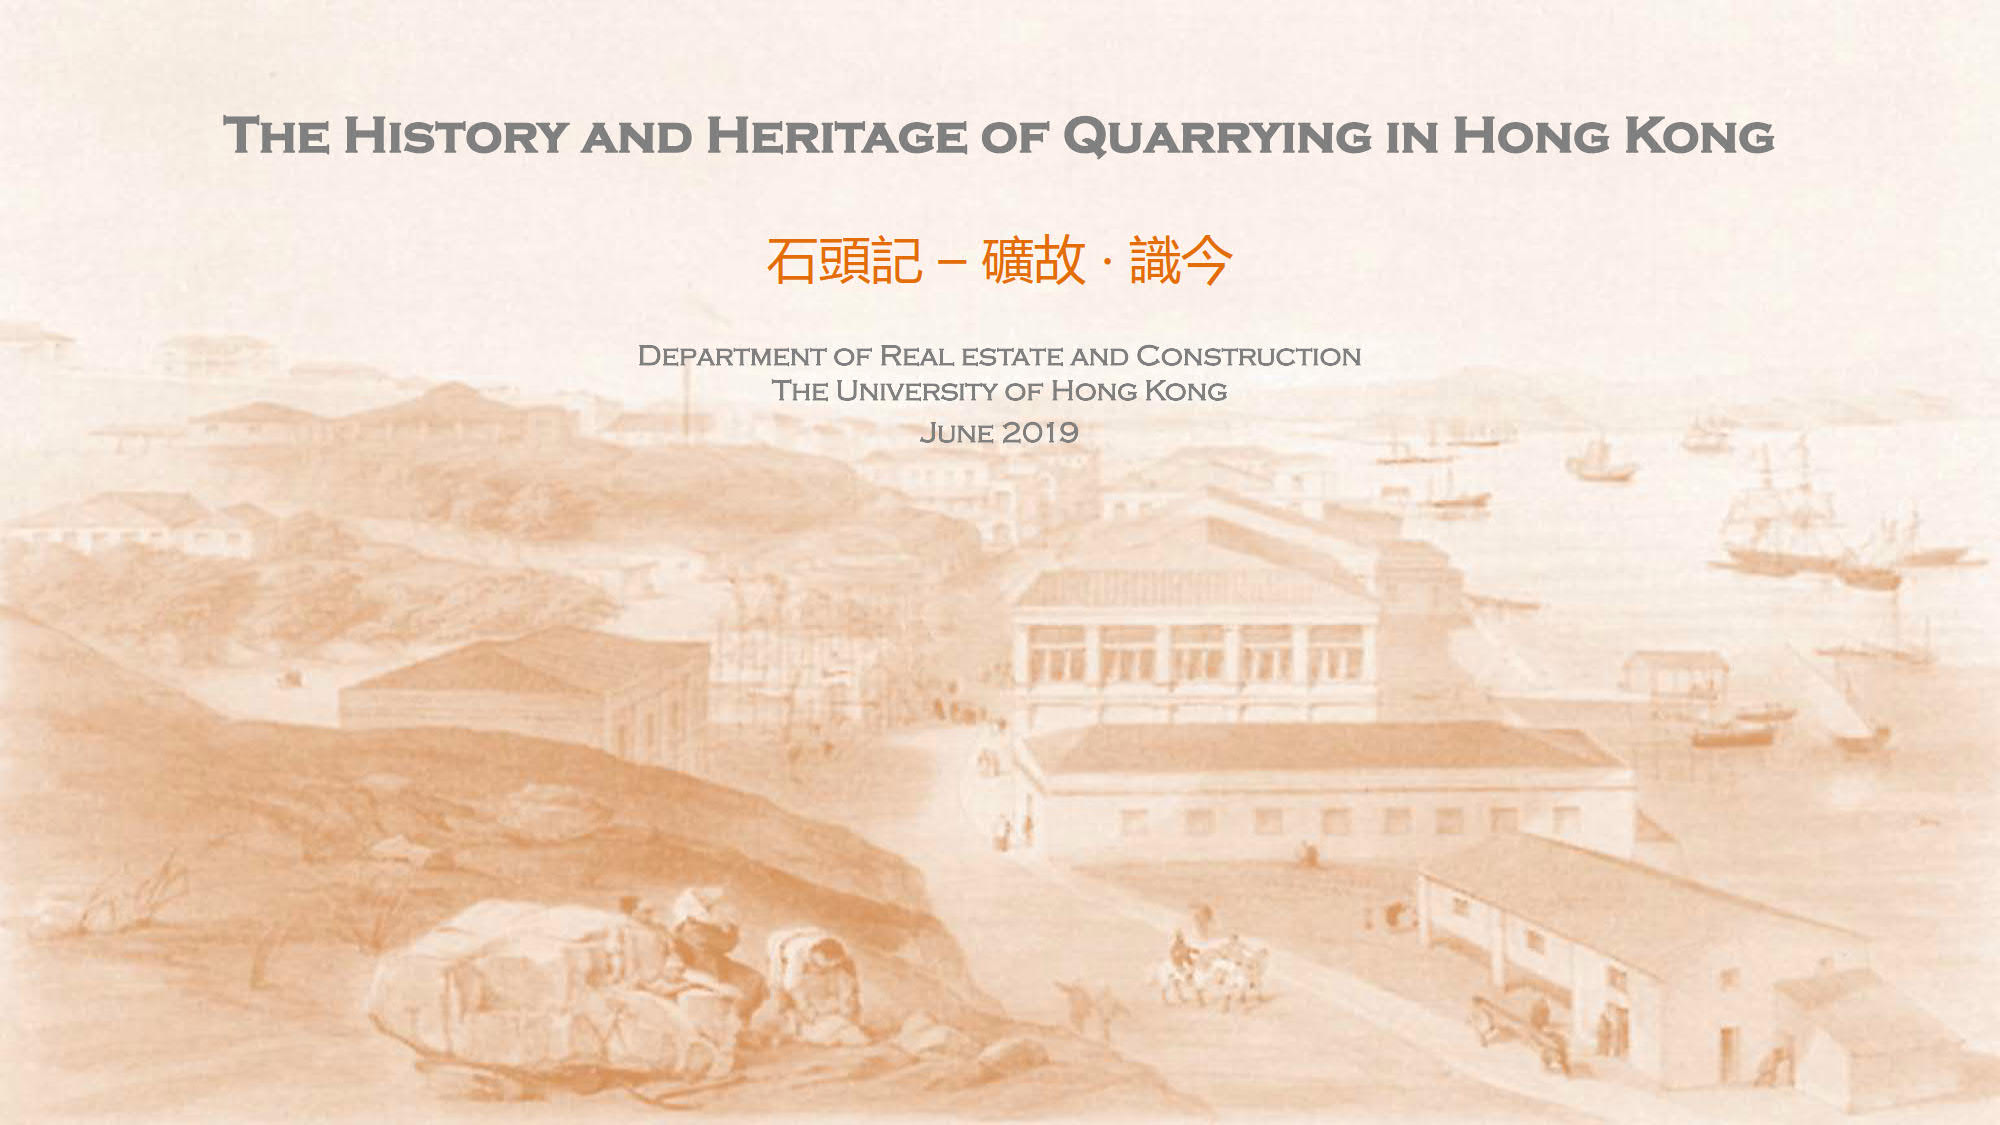 The History and Heritage of Quarrying in Hong Kong